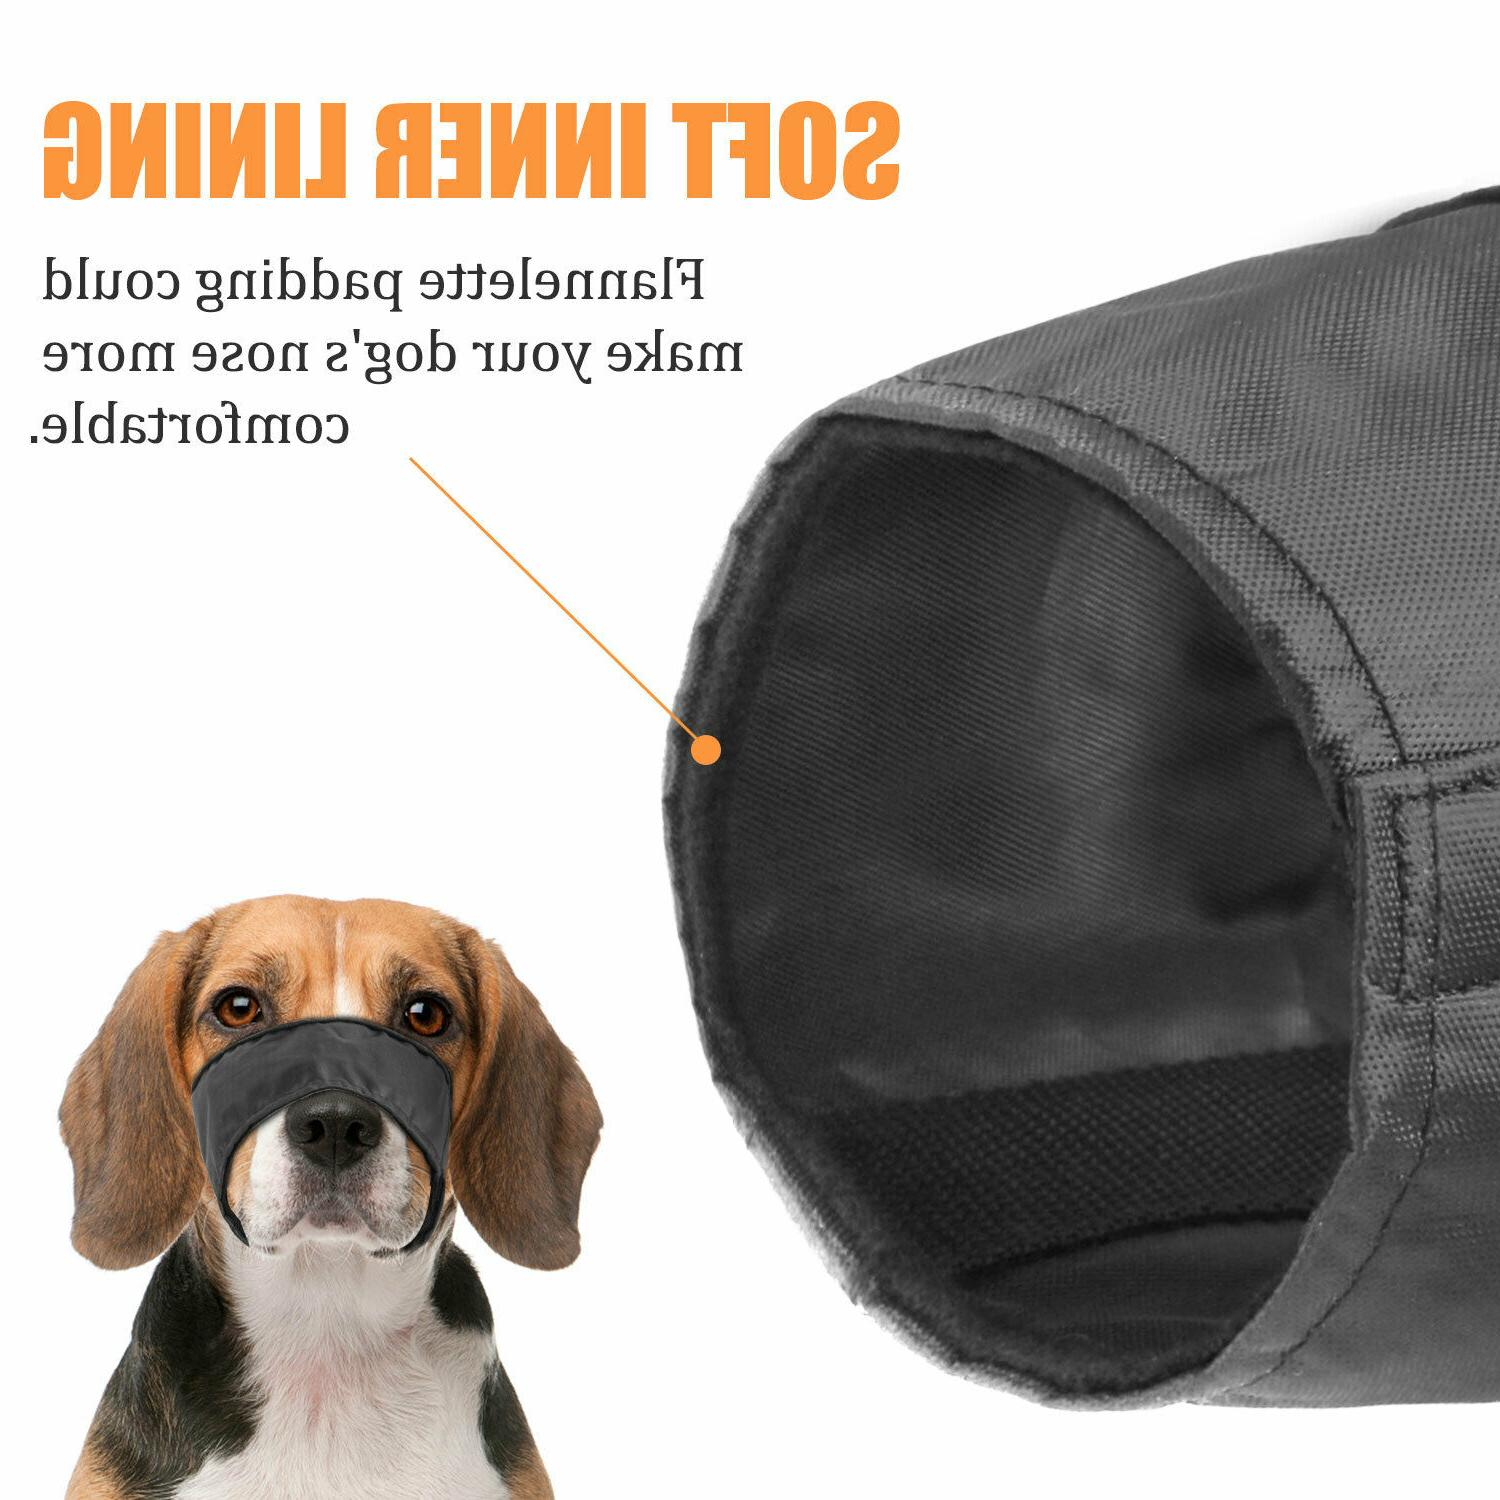 Black Dog Muzzle Fabric Comfortable Anti-Stop